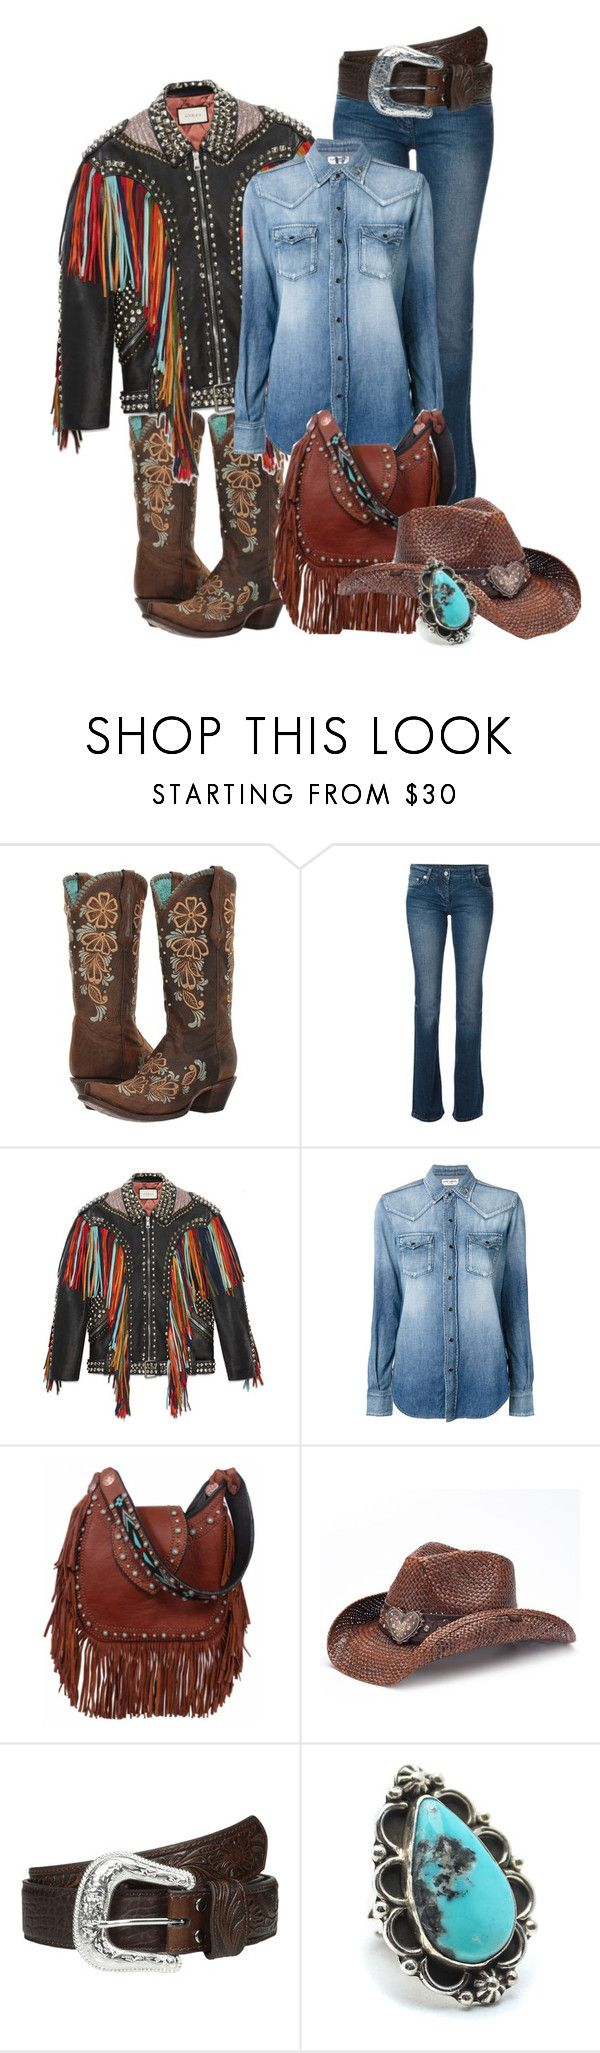 """- 61 - Western - Bag & Shoes"" by atenaide86 ❤ liked on Polyvore featuring Corral, Roberto Cavalli, Gucci, Yves Saint Laurent, Peter Grimm, M&F Western and Child Of Wild"